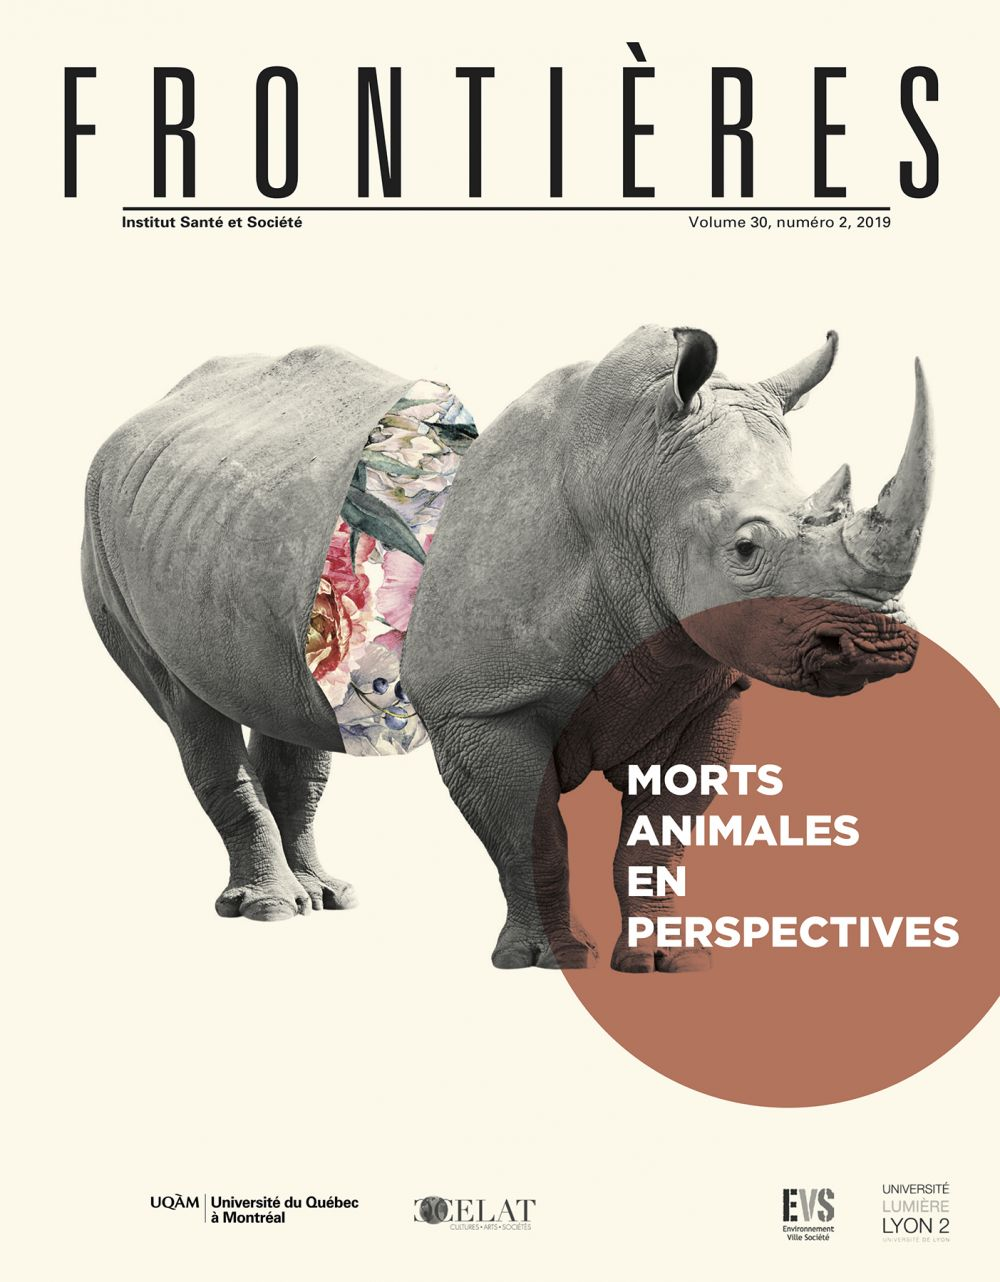 Frontières. Morts animales en perspectives (vol. 30, no. 2,  2019)